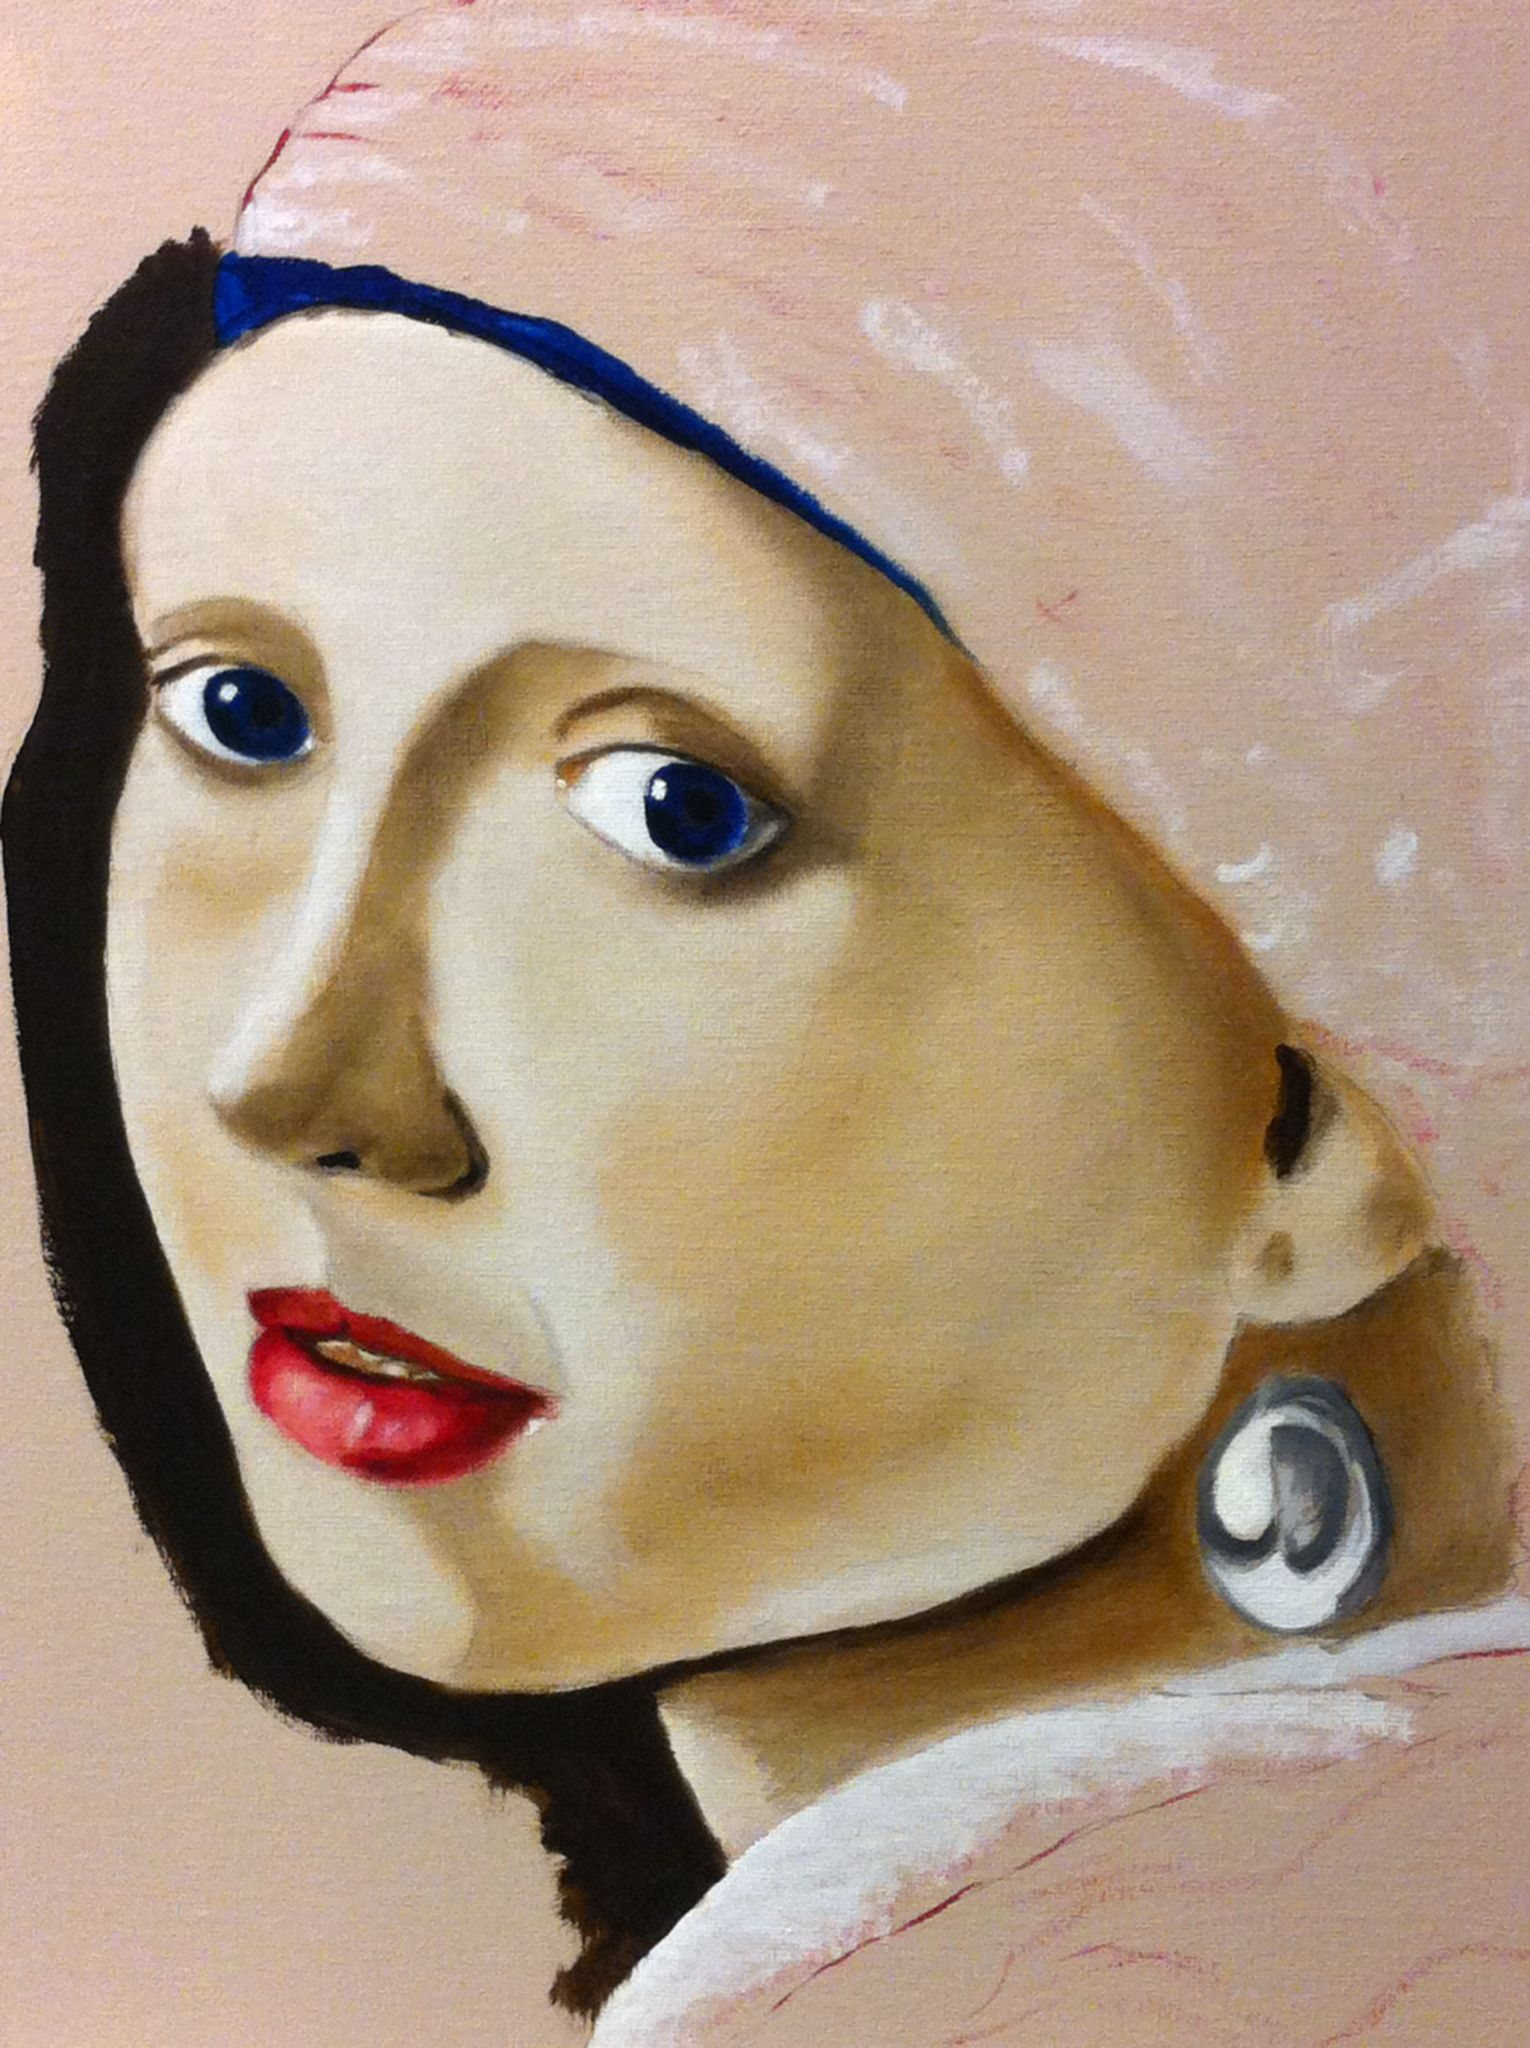 la joven de la perla in red la joven de la perla girl the pearl earring 30 x 40 cm oil on canvas